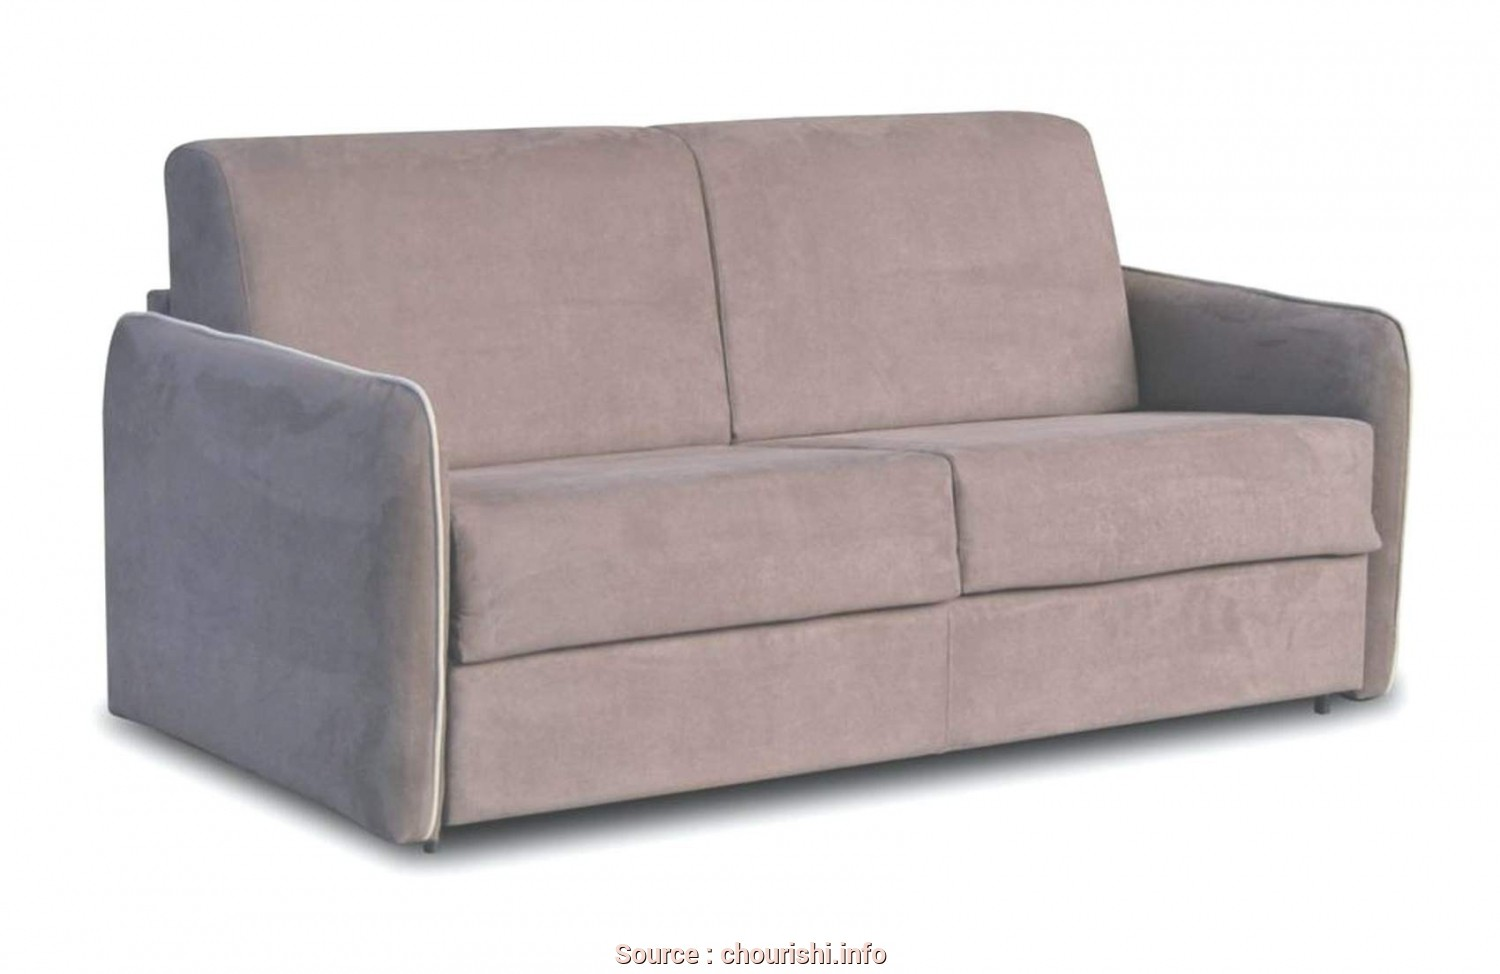 Backabro Canape Ikea, Freddo Gallery Of Backabro Two-Seat Sofa-Bed Nordvalla Dark Grey, Ikea Intended, Ikea Canapé 1 Place Convertible